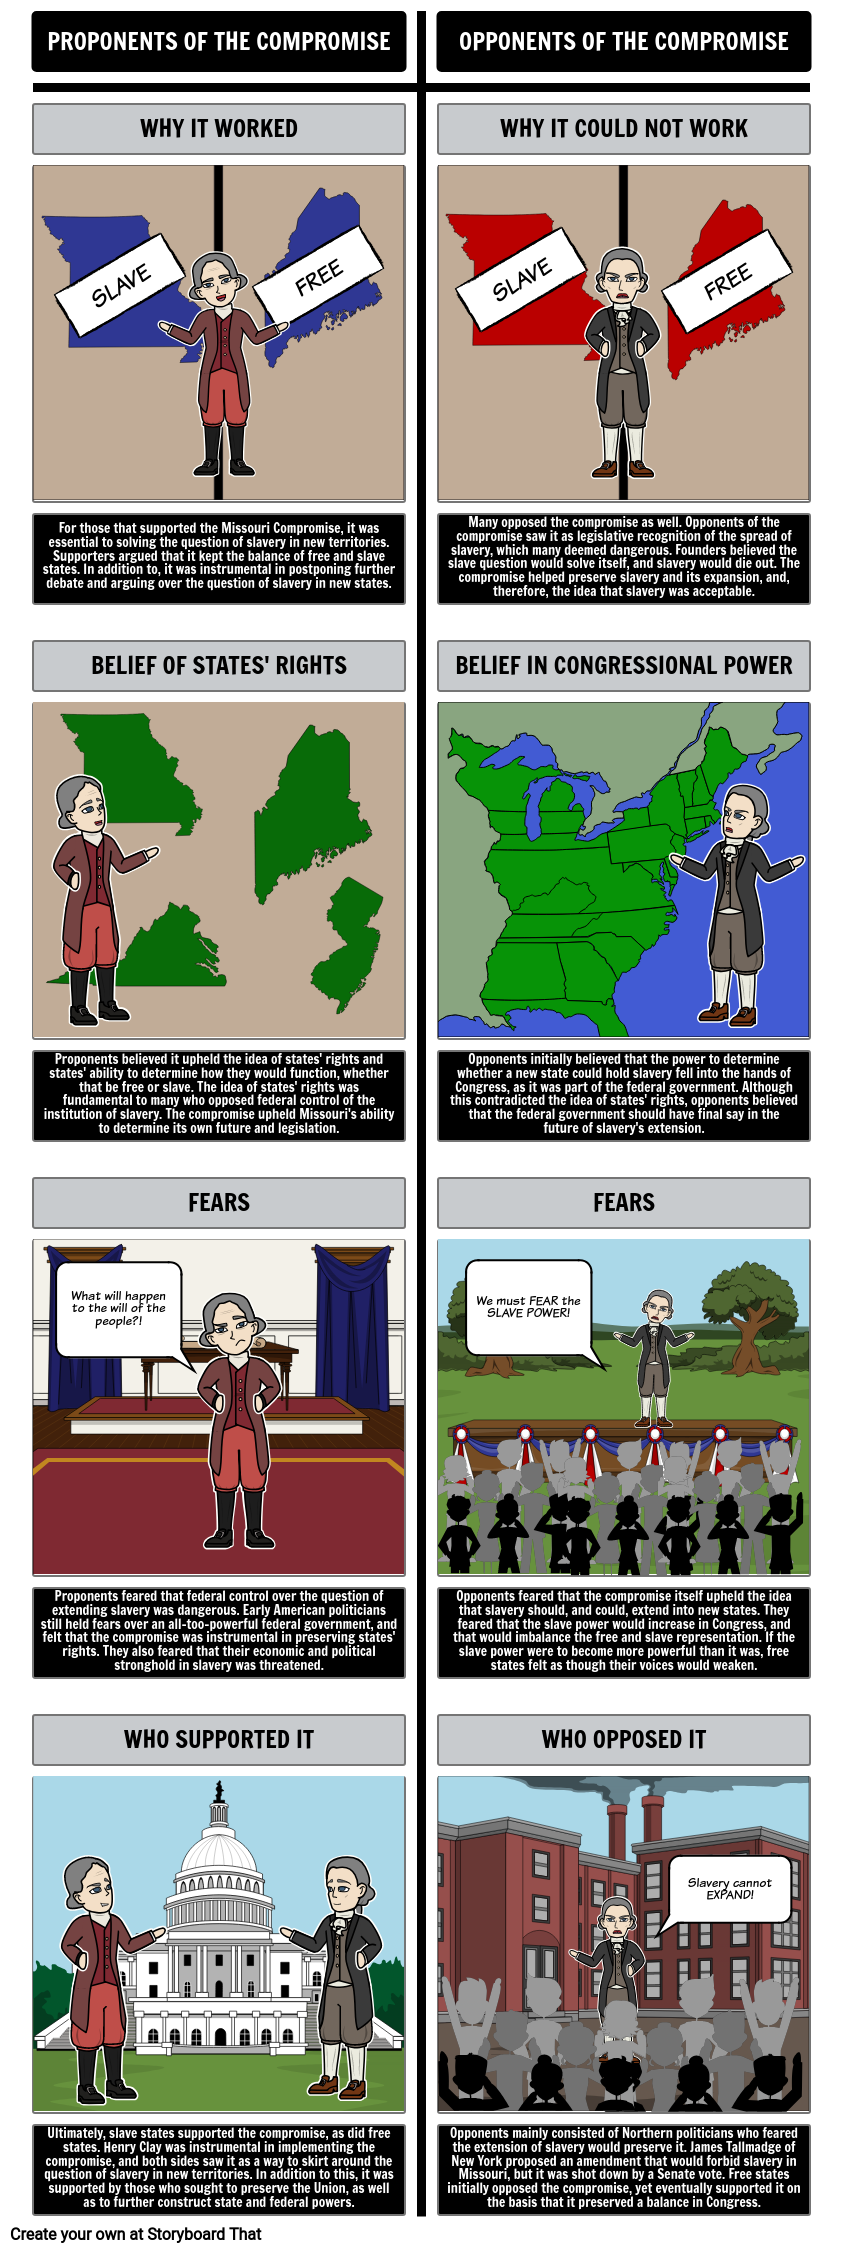 The Missouri Compromise of 1820 - Proponents and Opponents